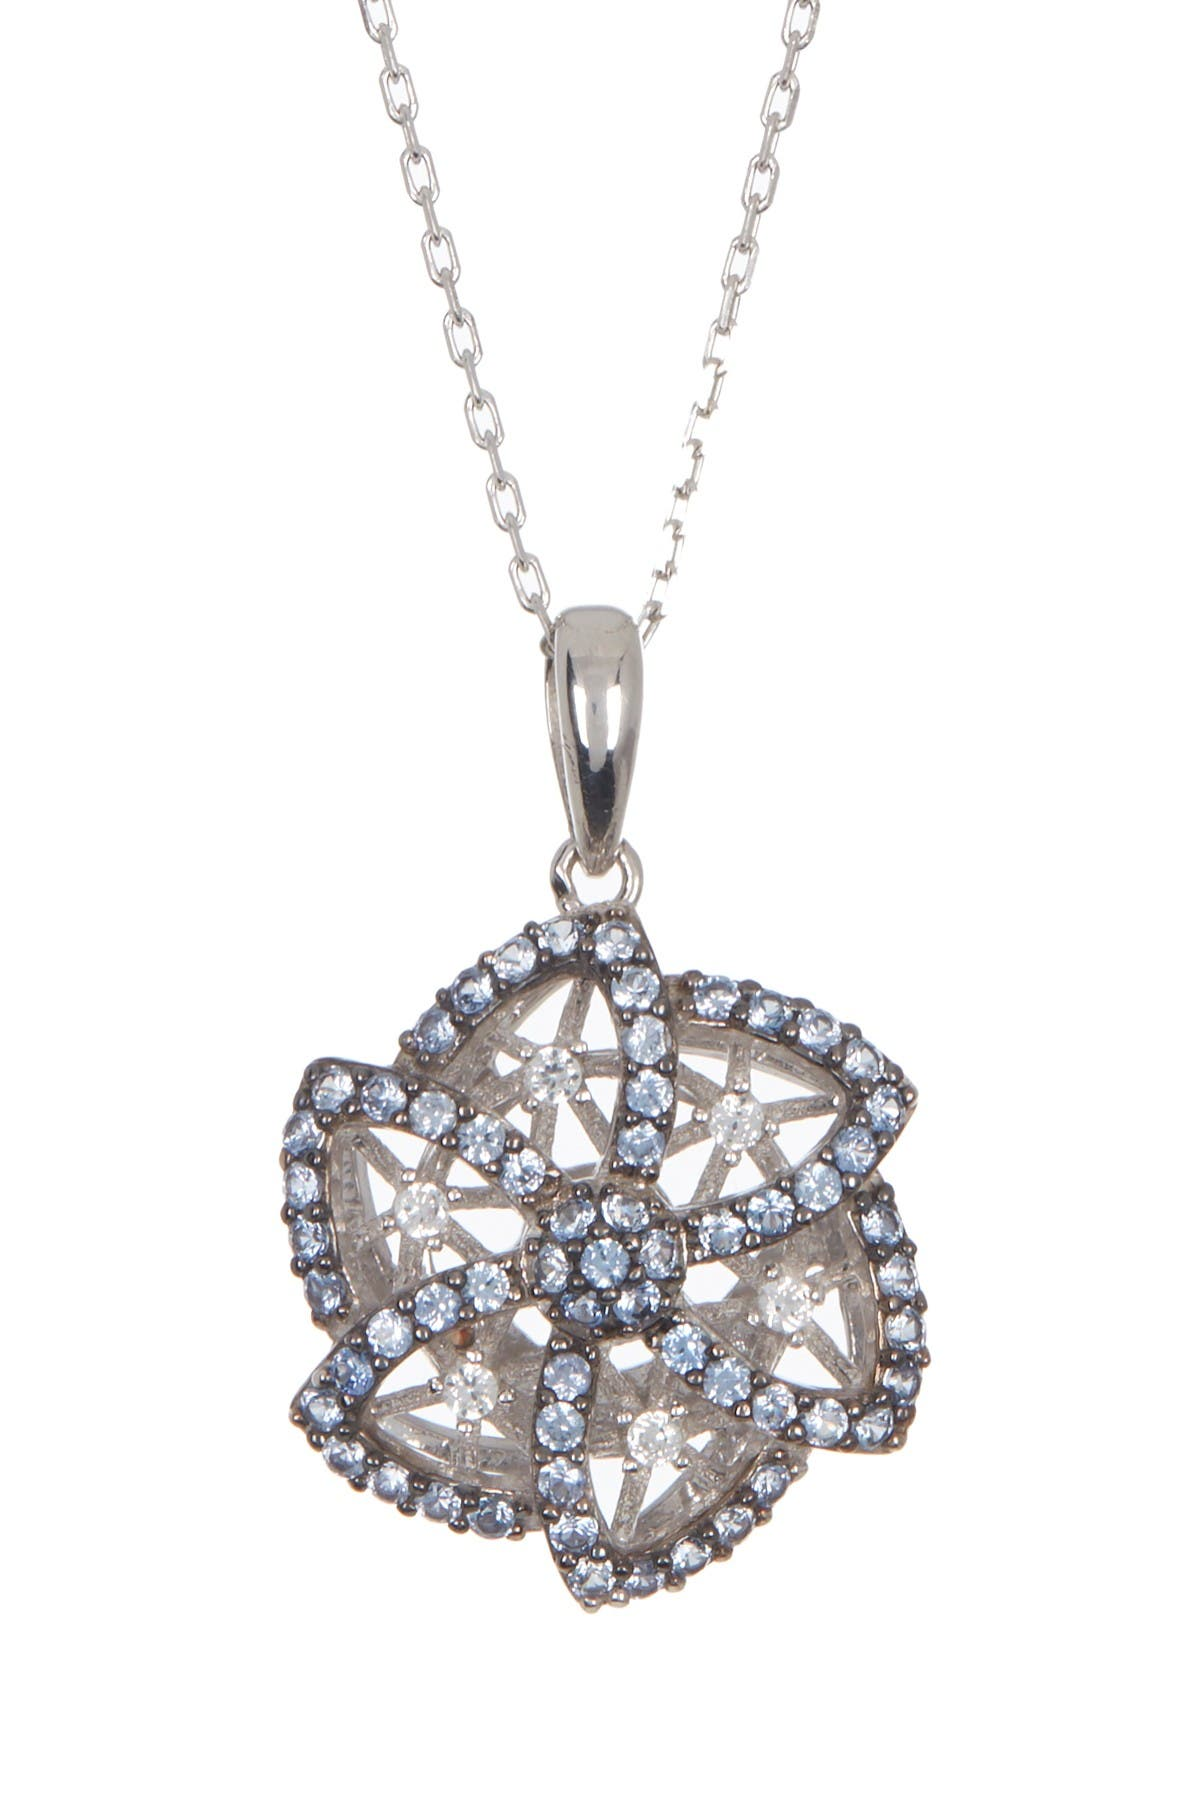 Image of Suzy Levian Sterling Silver Sapphire Caged Flower Pendant Diamond Accent Necklace - 0.02 ctw